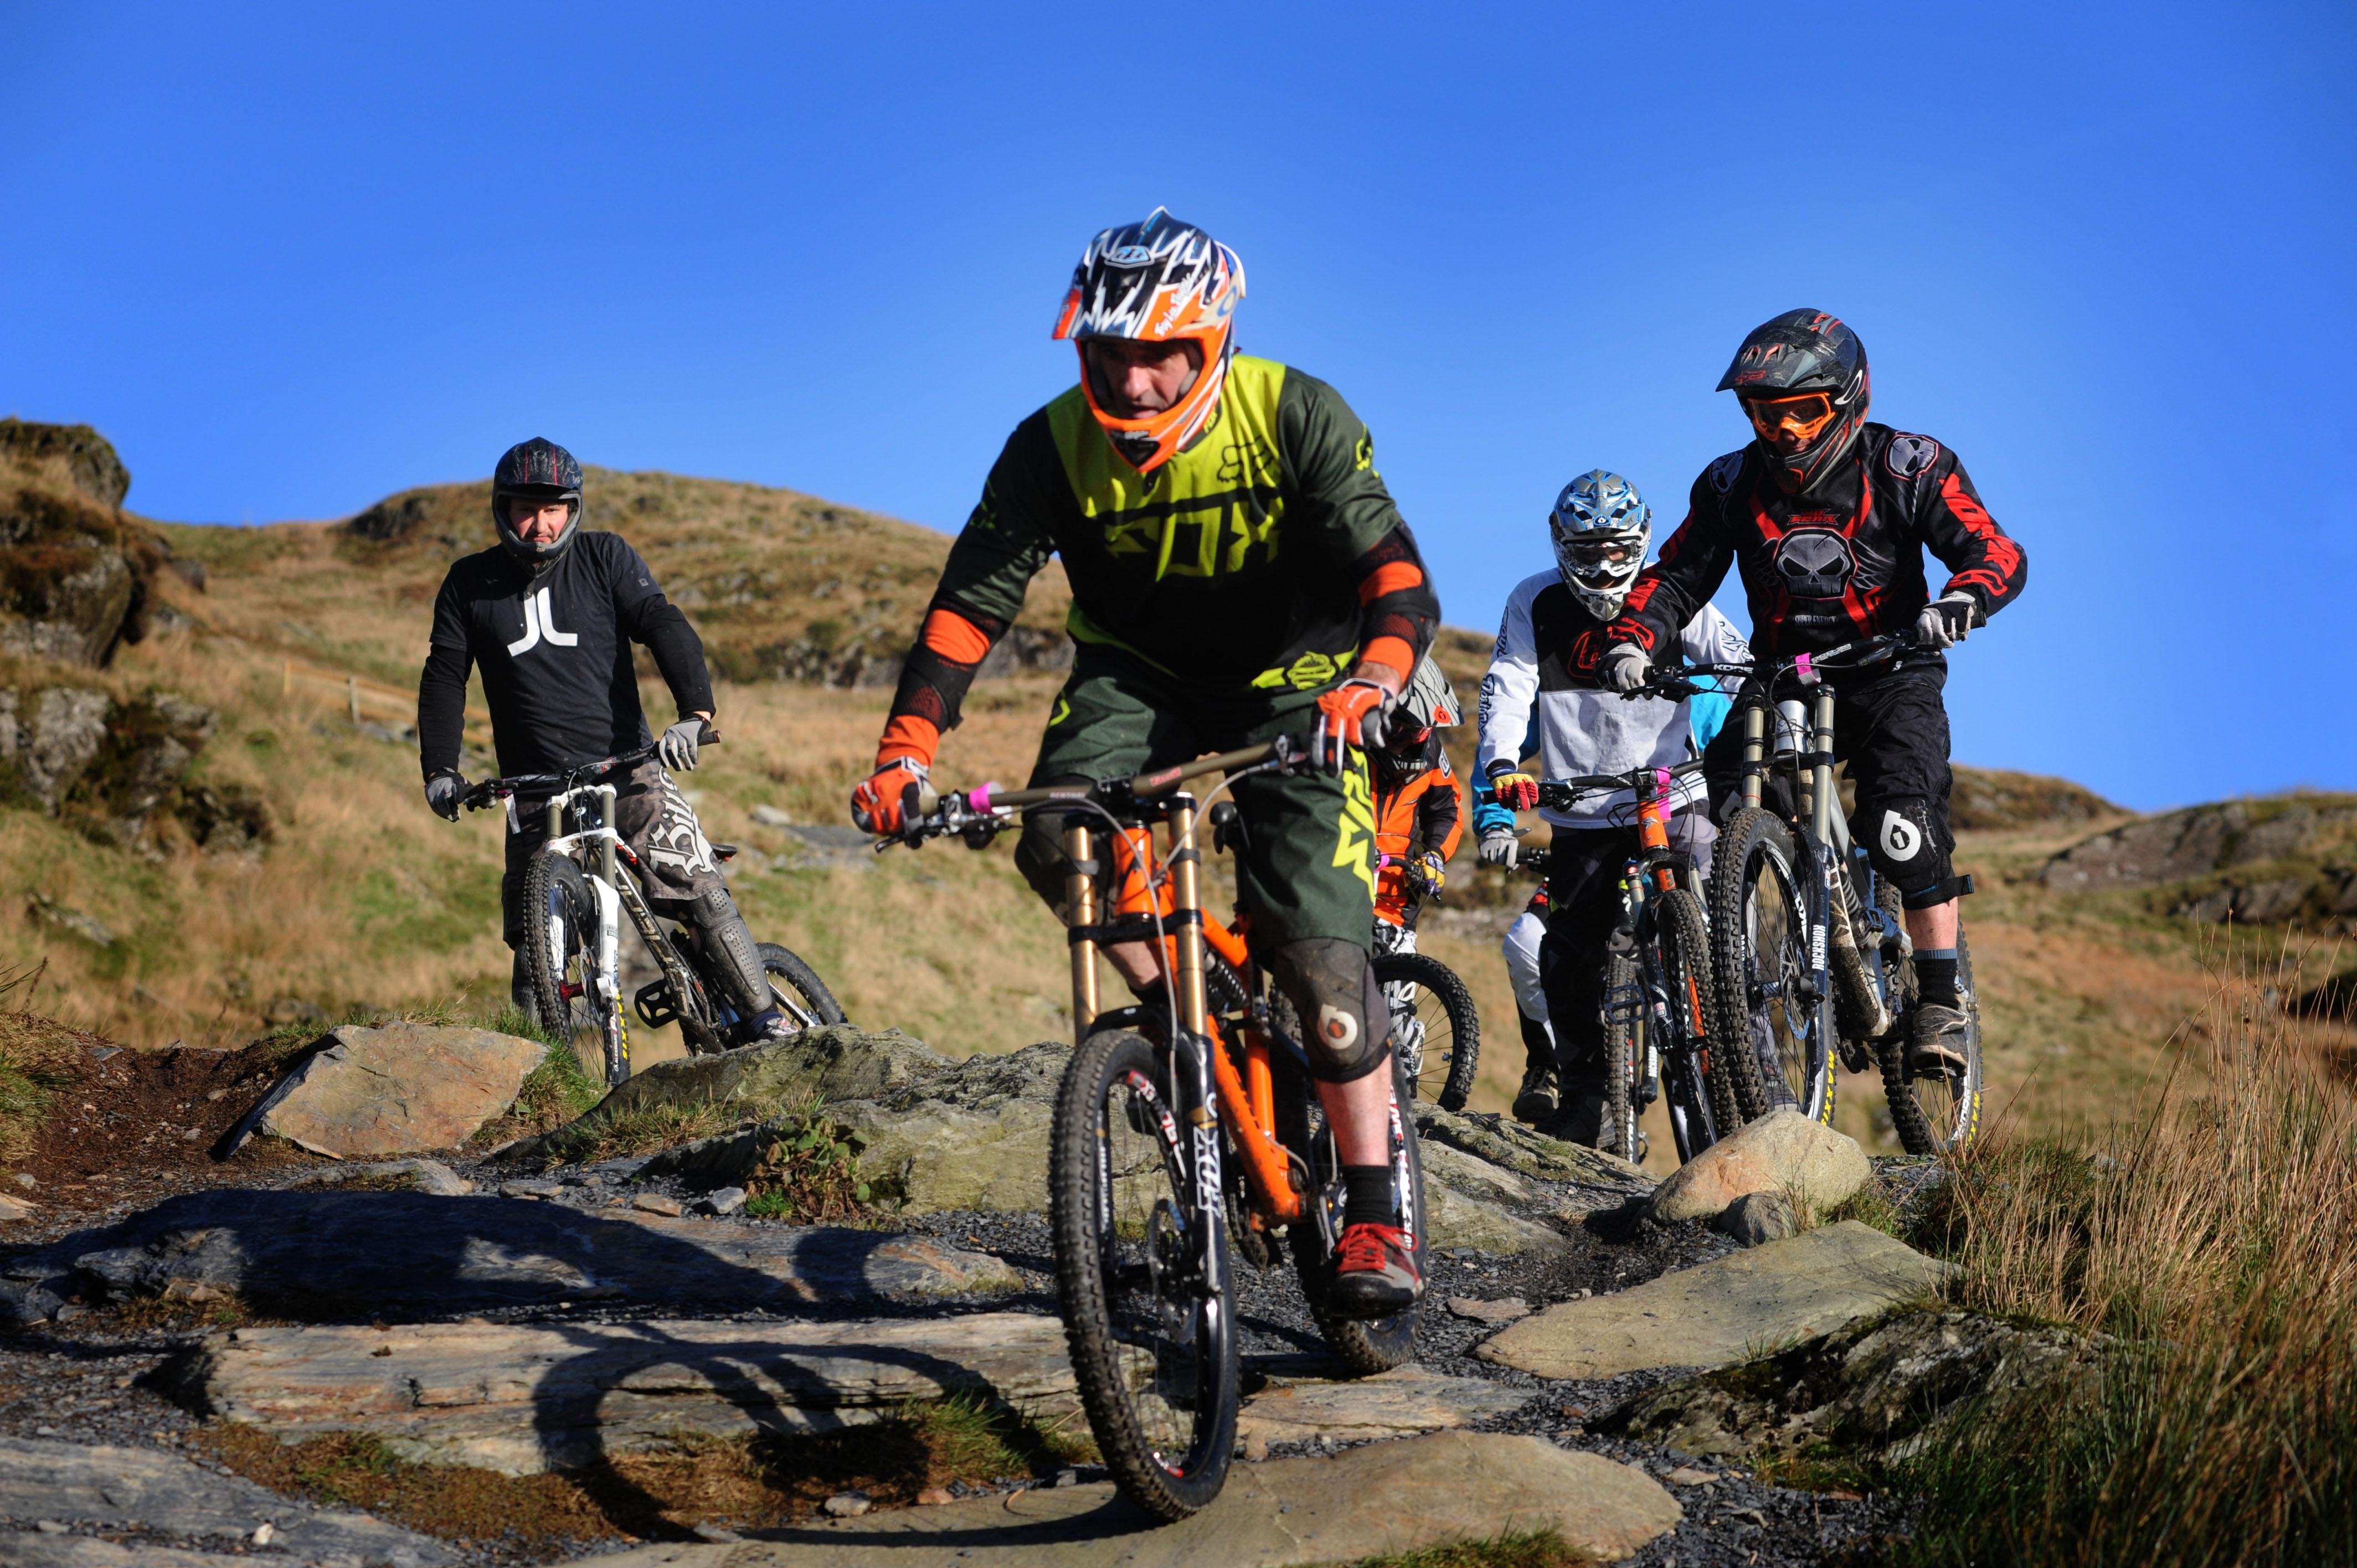 Group of people mountain biking